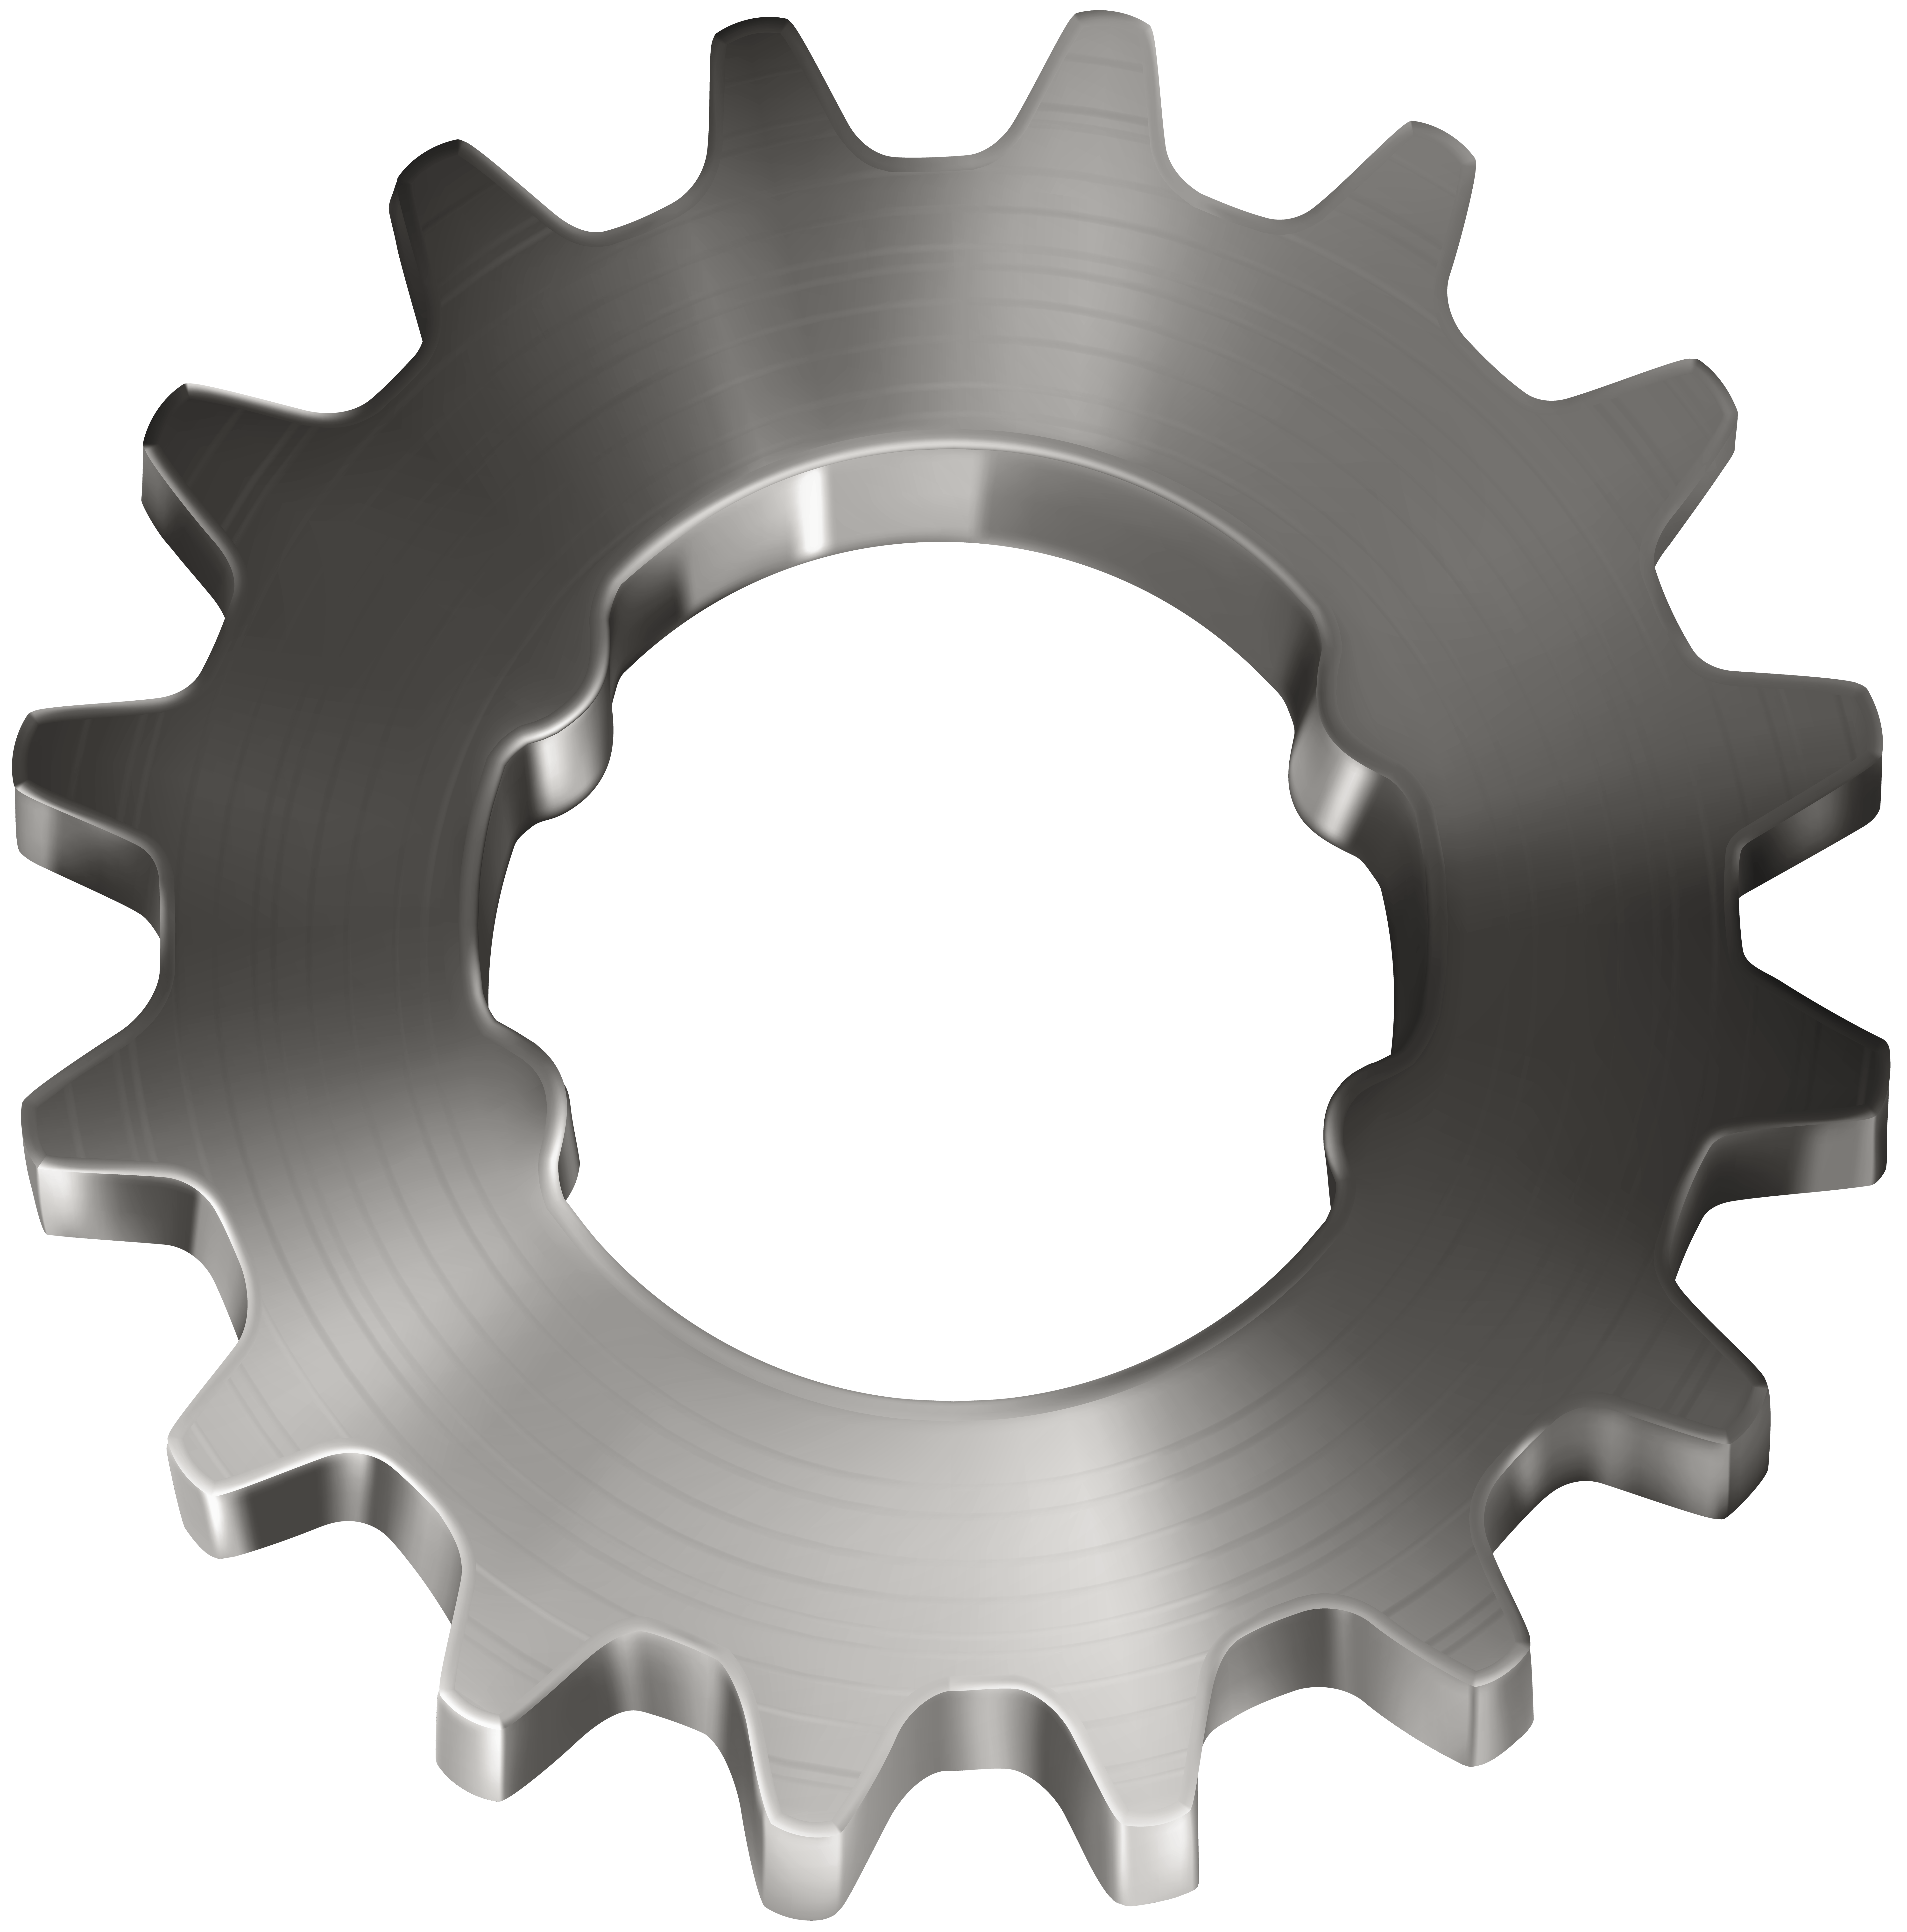 Gears clipart mechanical part. Gear icon machine illustration